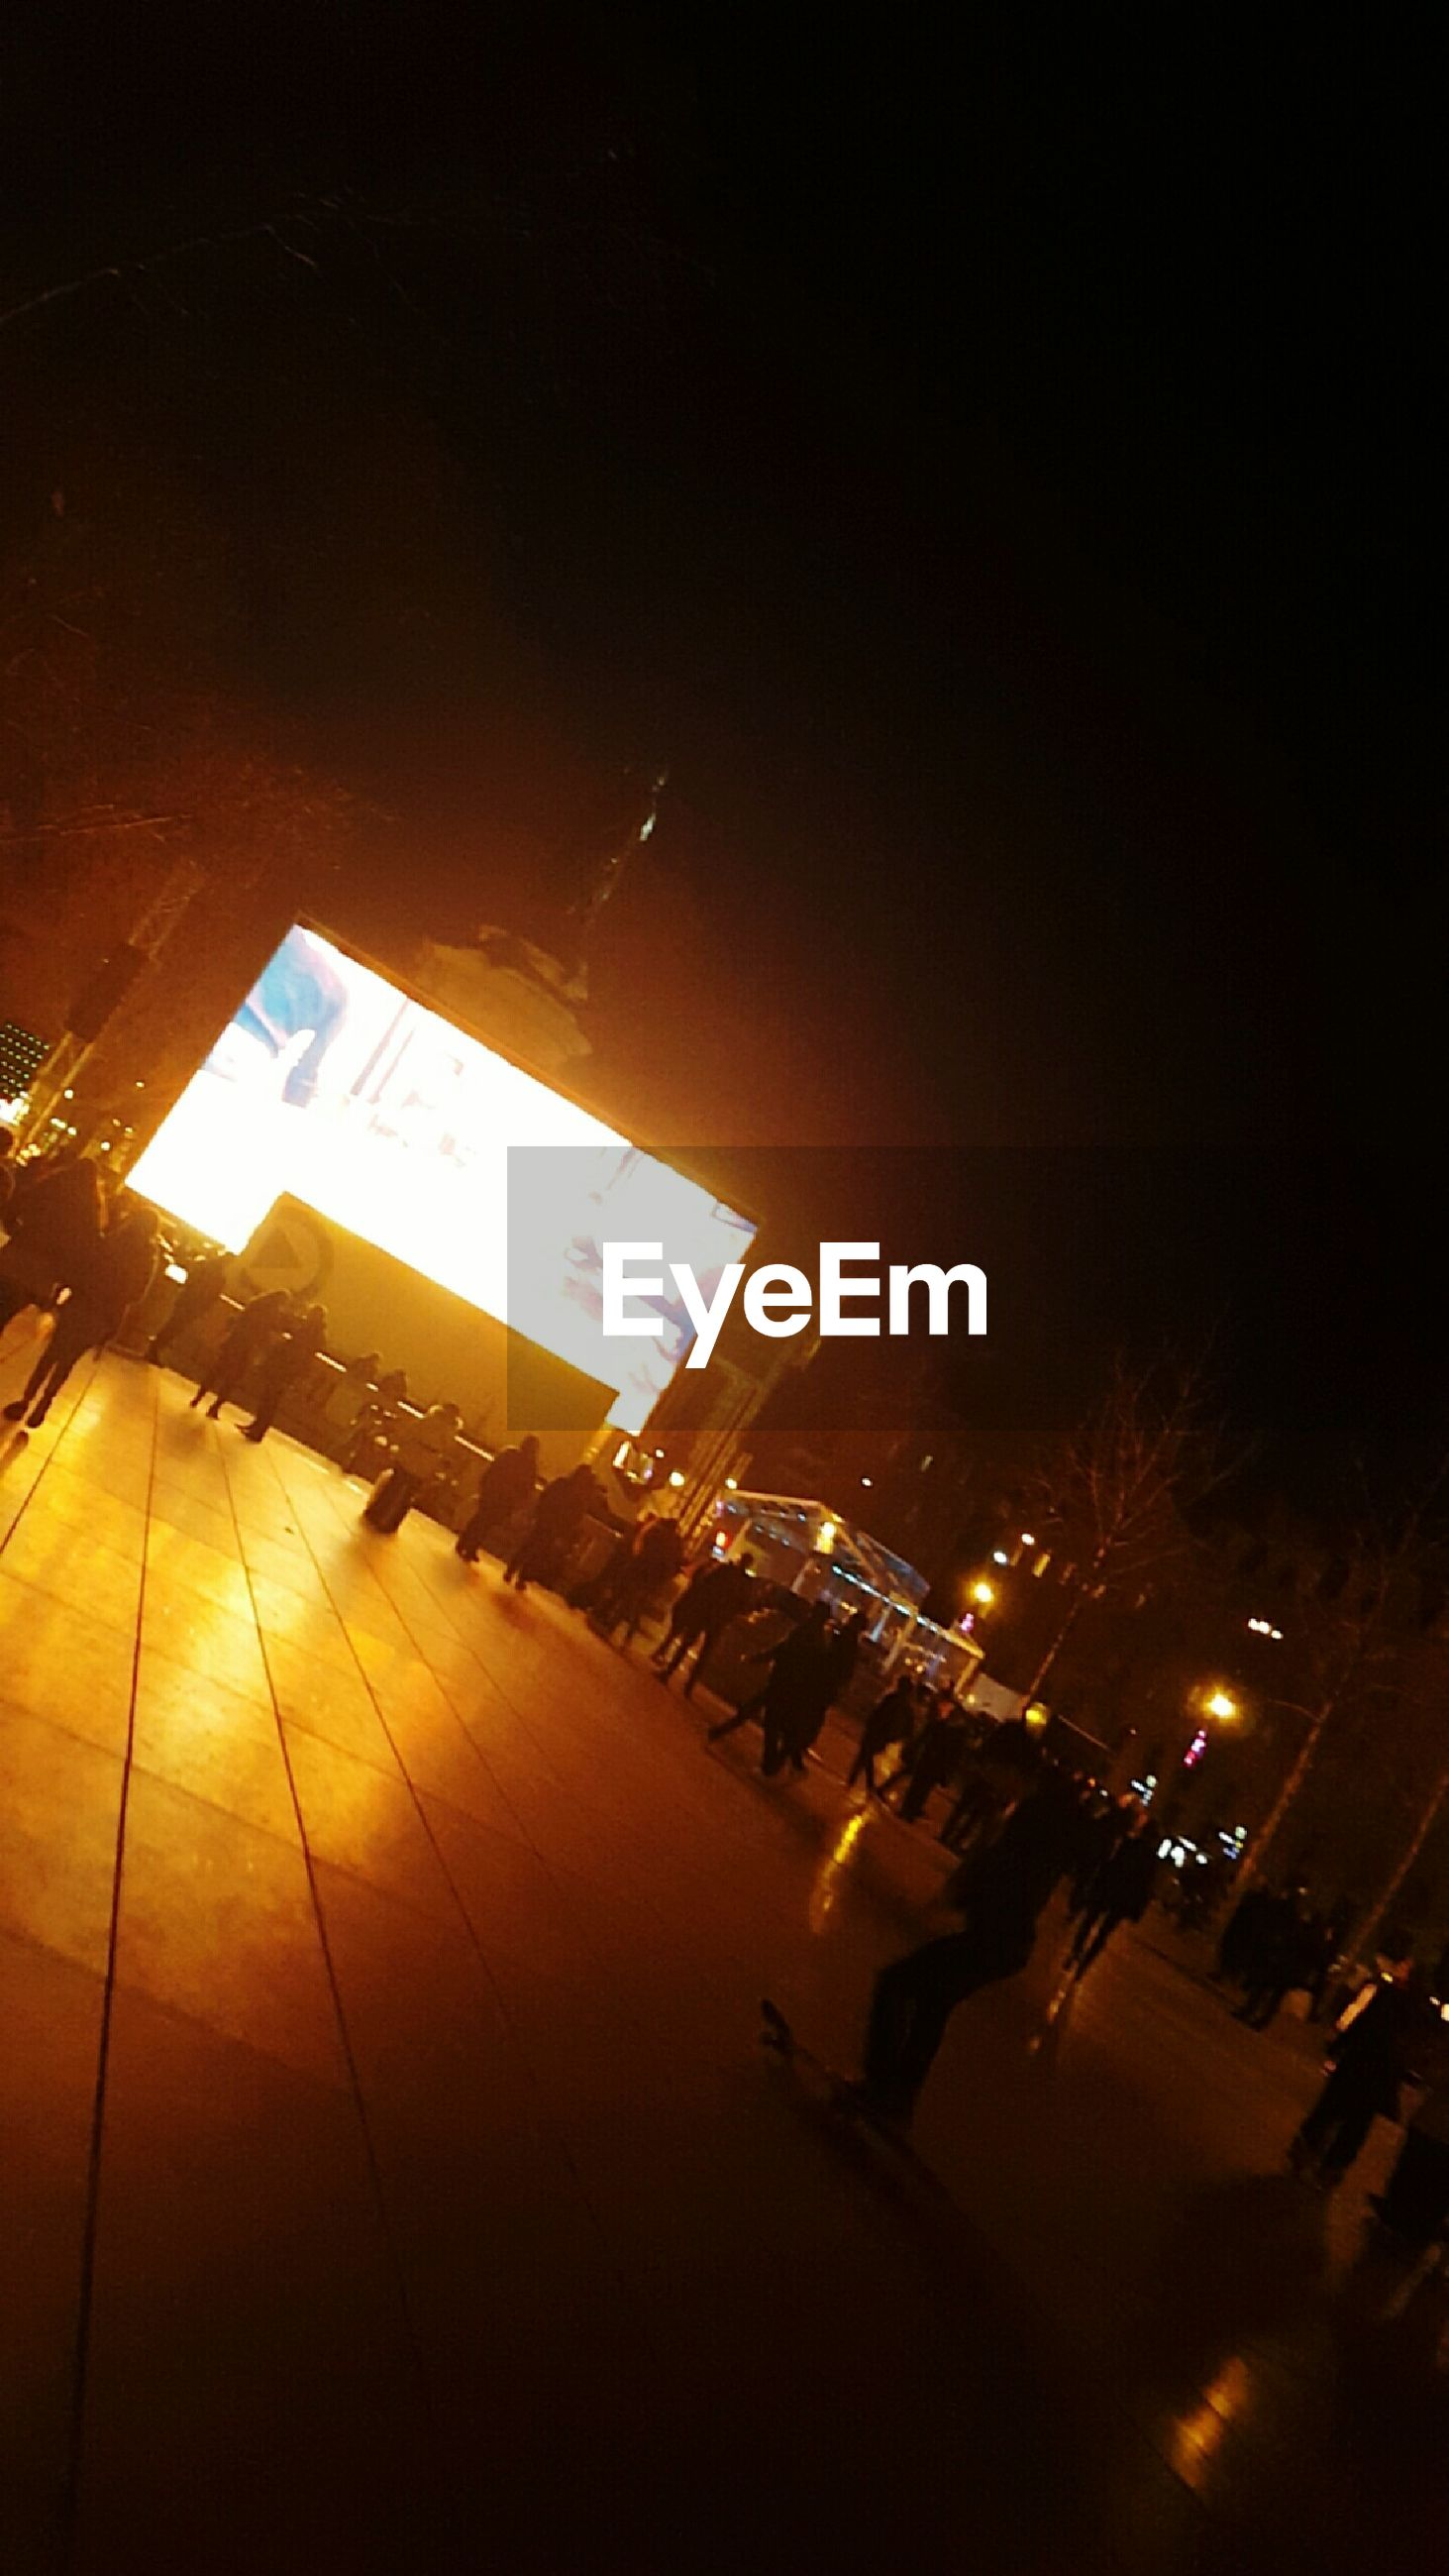 illuminated, night, building exterior, architecture, built structure, city, city life, street, text, sky, high angle view, communication, lighting equipment, outdoors, building, city street, large group of people, low angle view, light - natural phenomenon, copy space